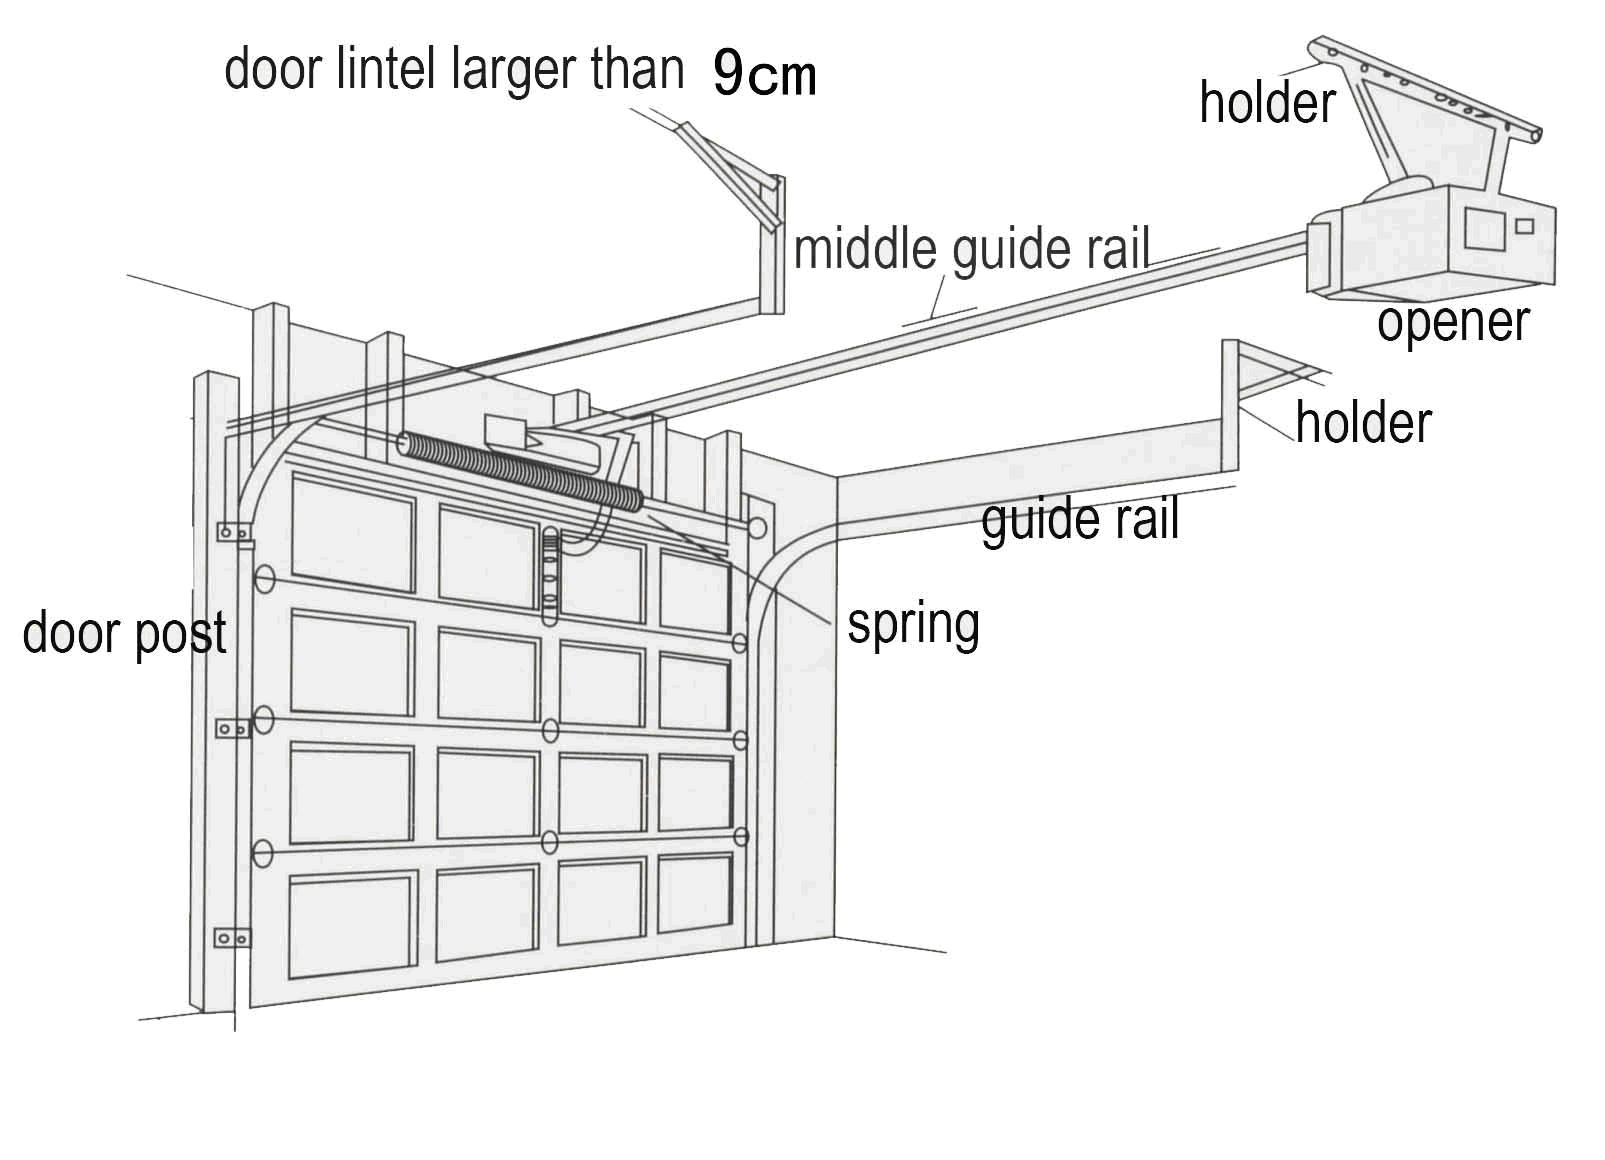 How Can I Fix A Bent Section Or Panel On My Garage Door